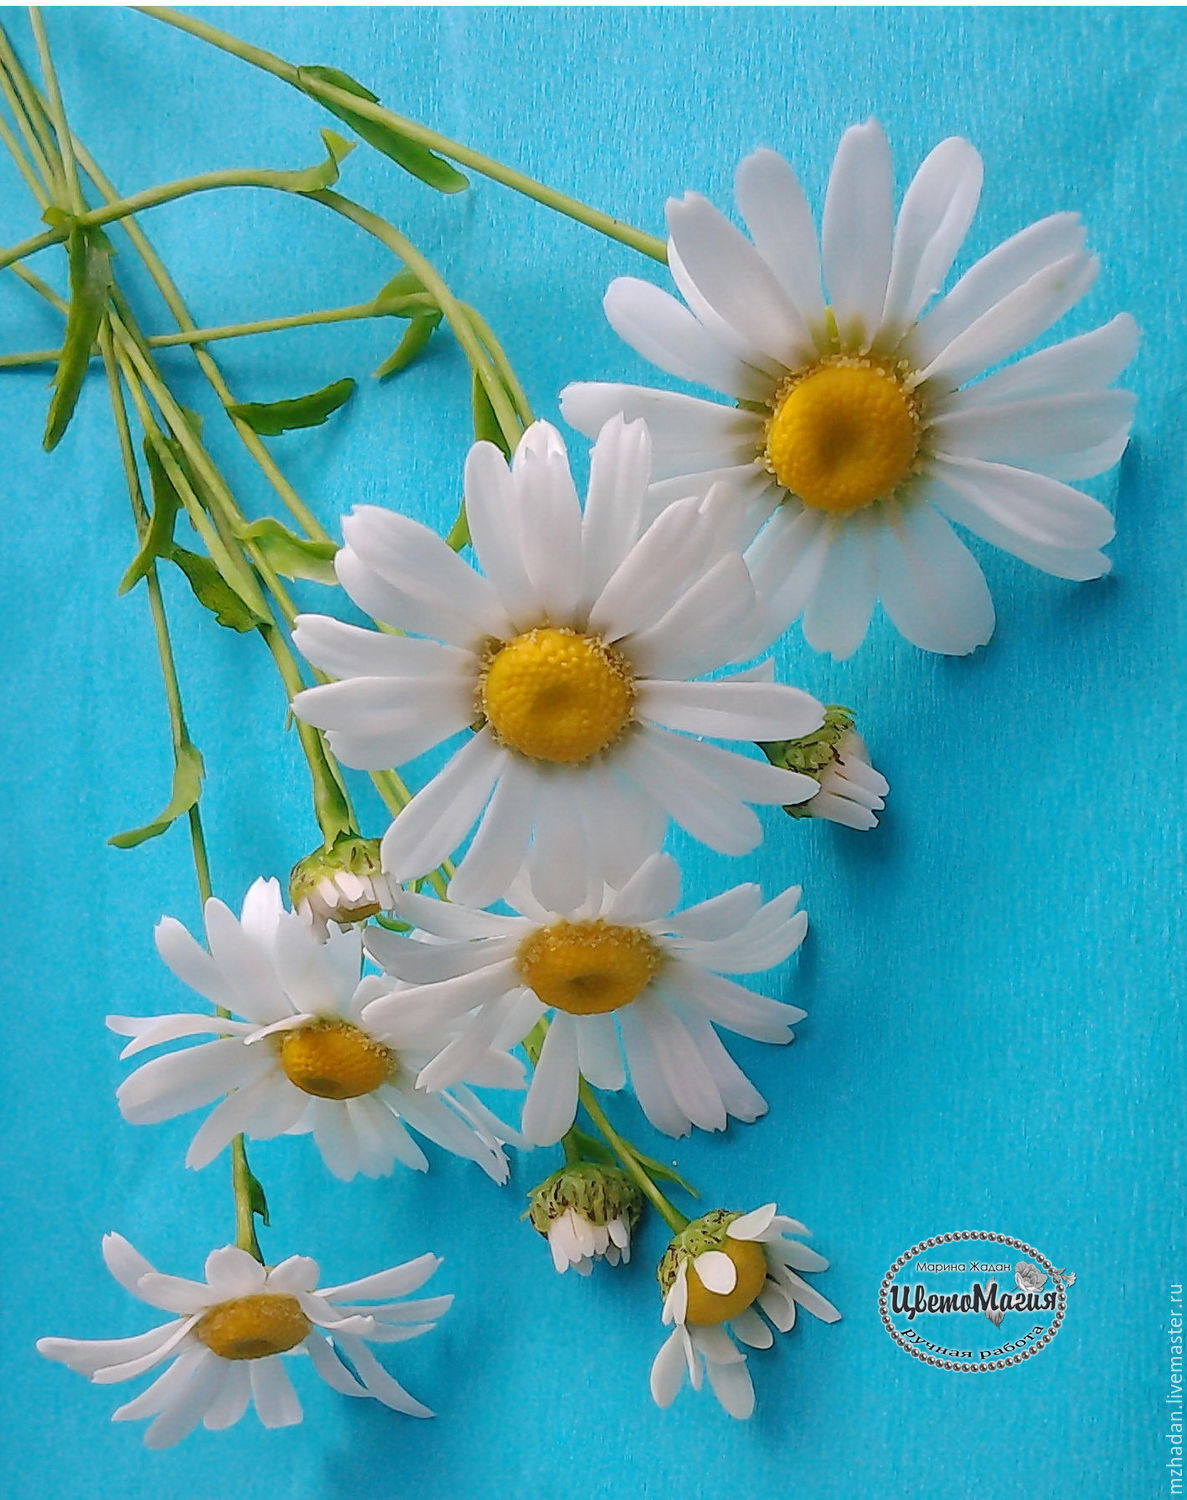 Daisies Polymer Clay Shop Online On Livemaster With Shipping